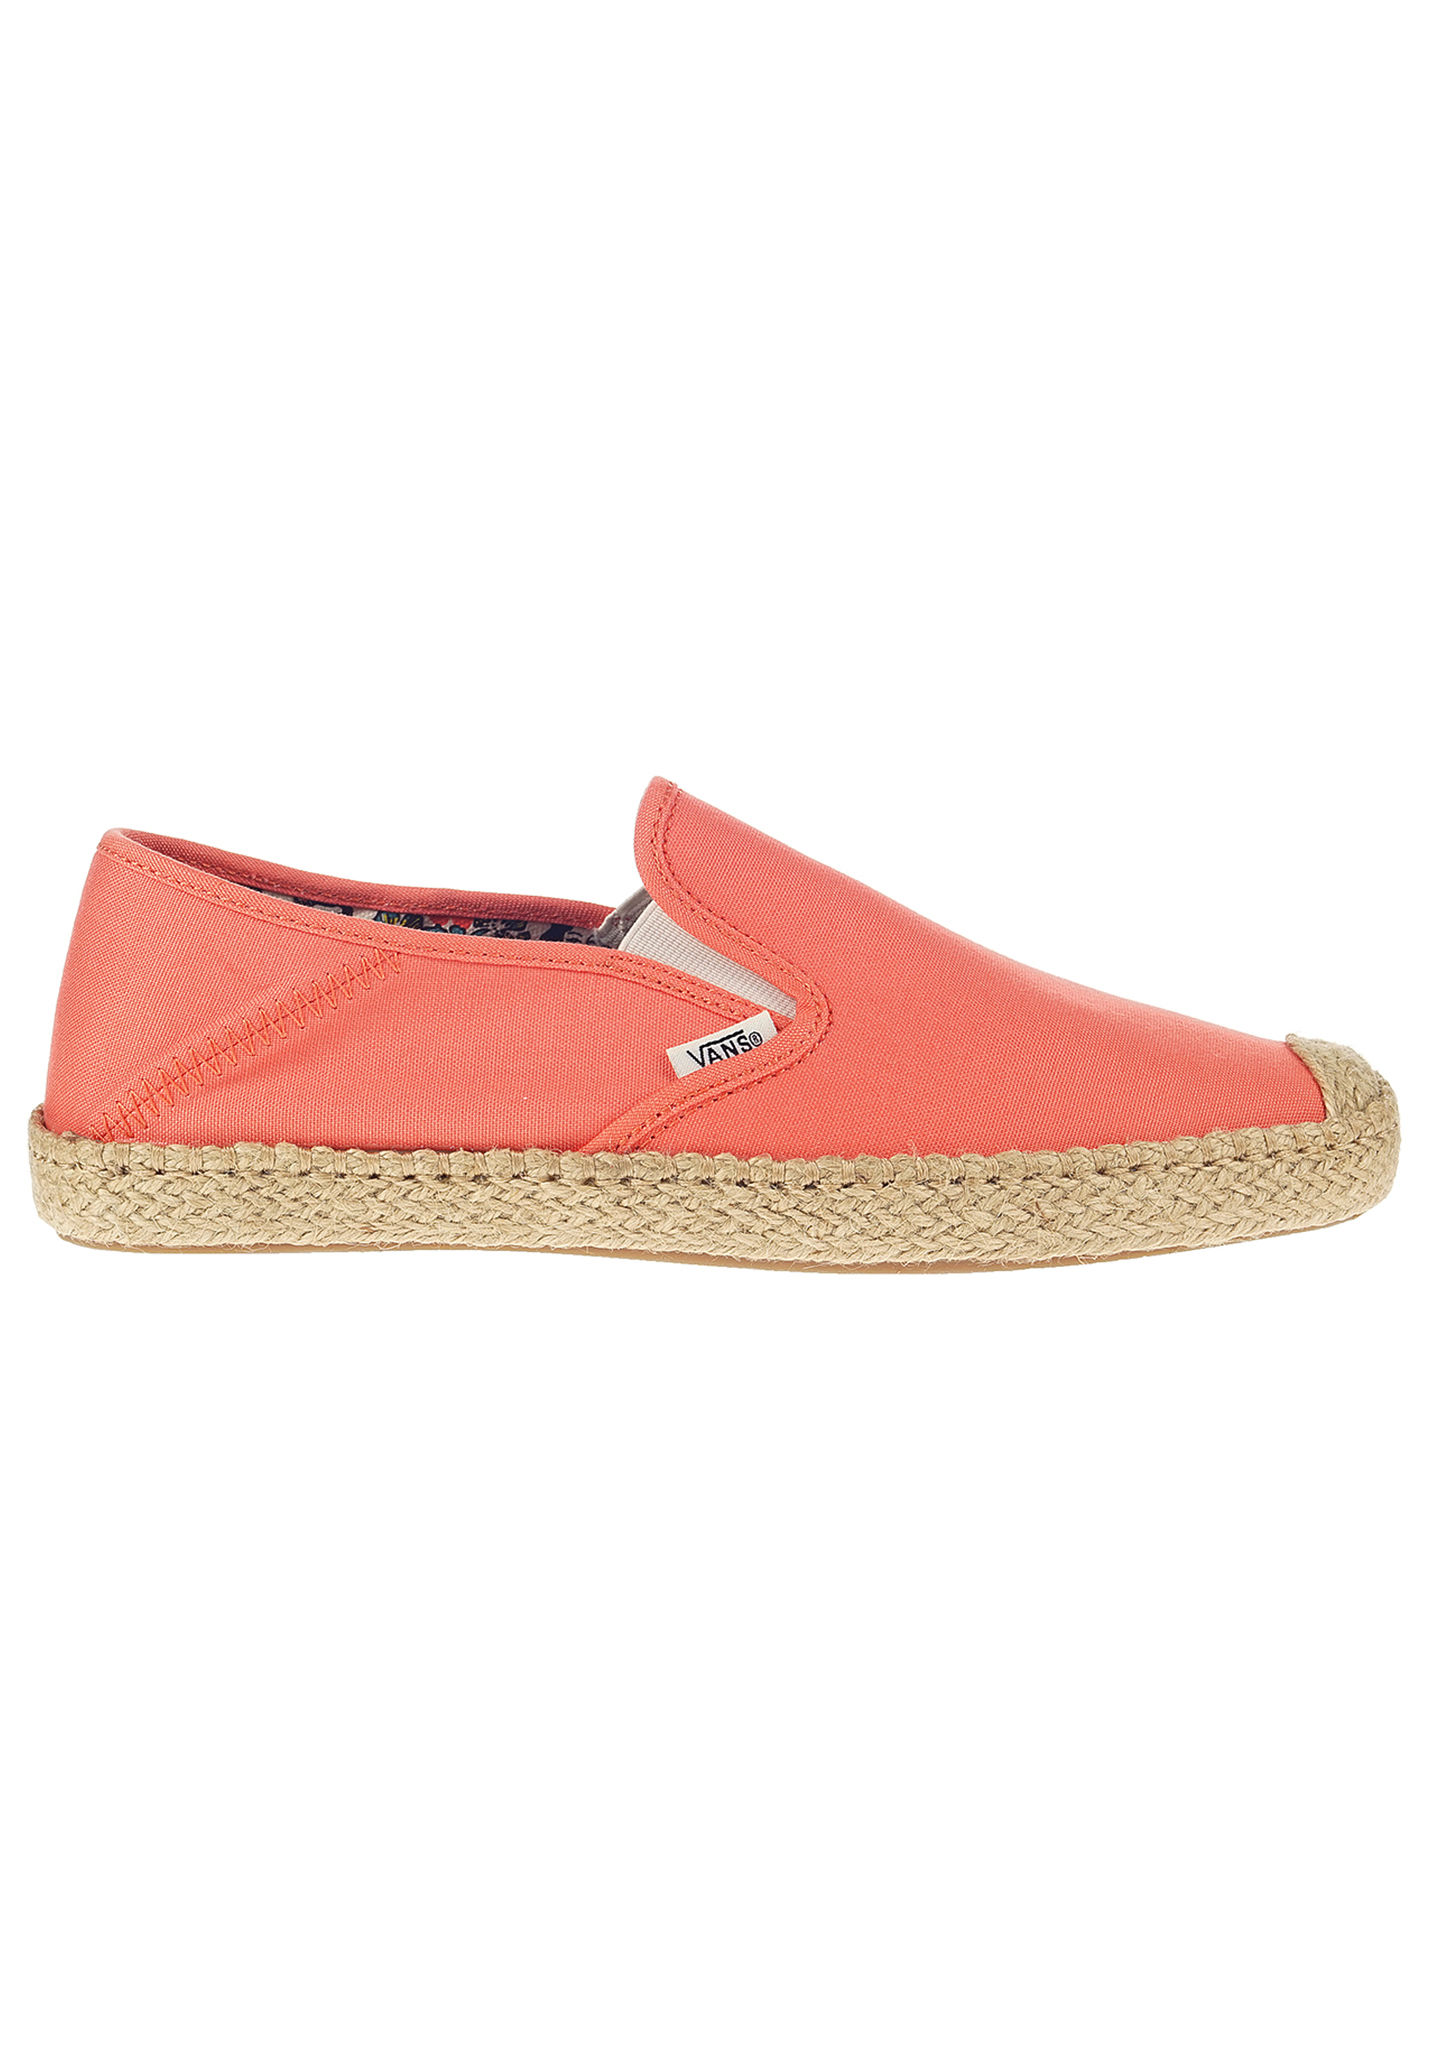 6c62789230 VANS Slip-On ESP - Espadrilles für Damen - Orange - Planet Sports